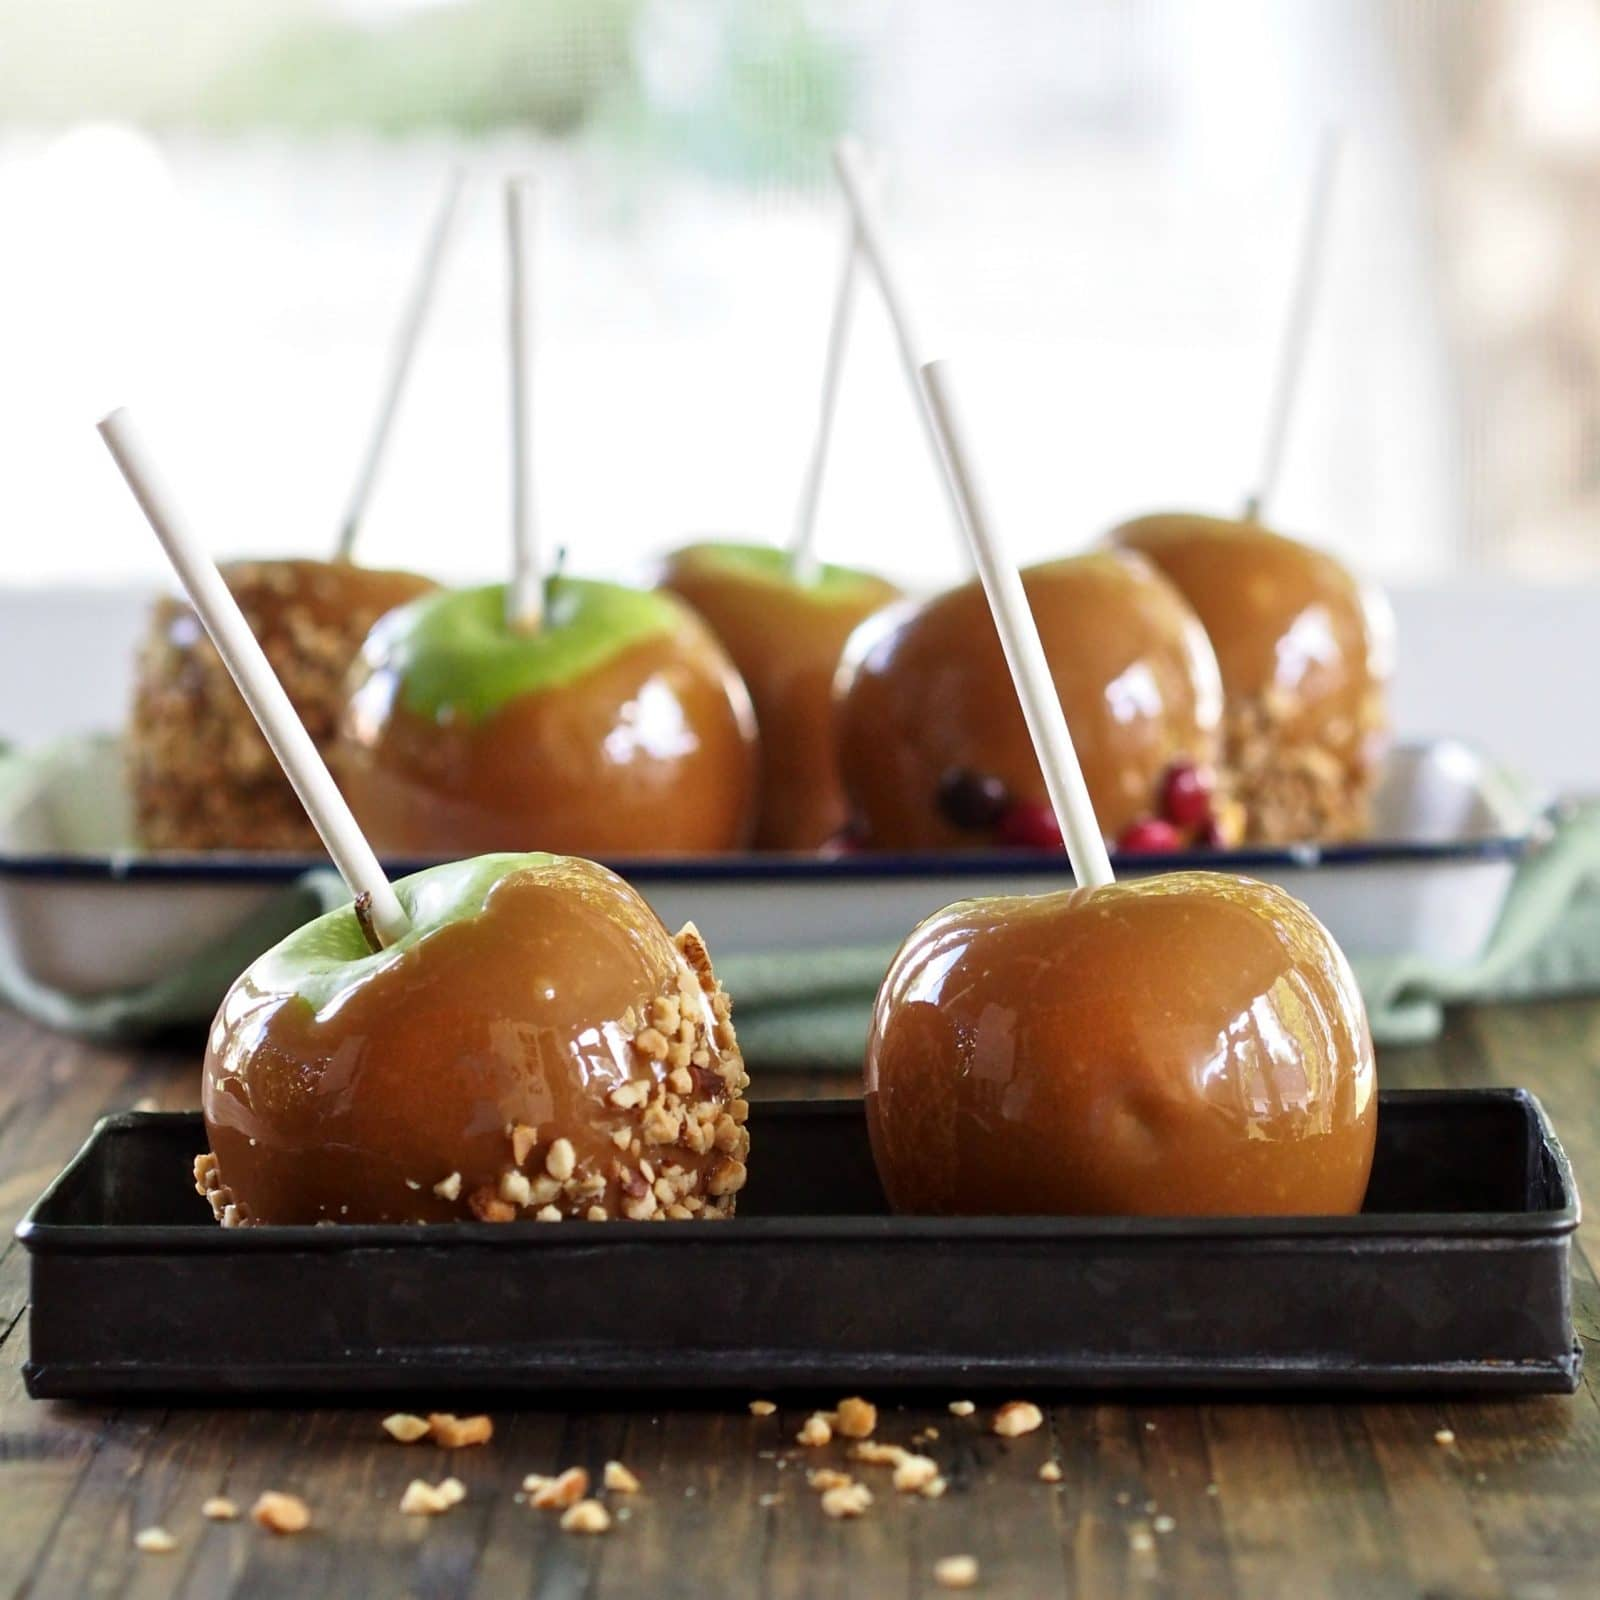 Classic Caramel Apples. Young or old - everyone's most-loved fall treat. Juicy, tart apples smothered in melted caramel then dipped in favorite toppings. Simply Sated